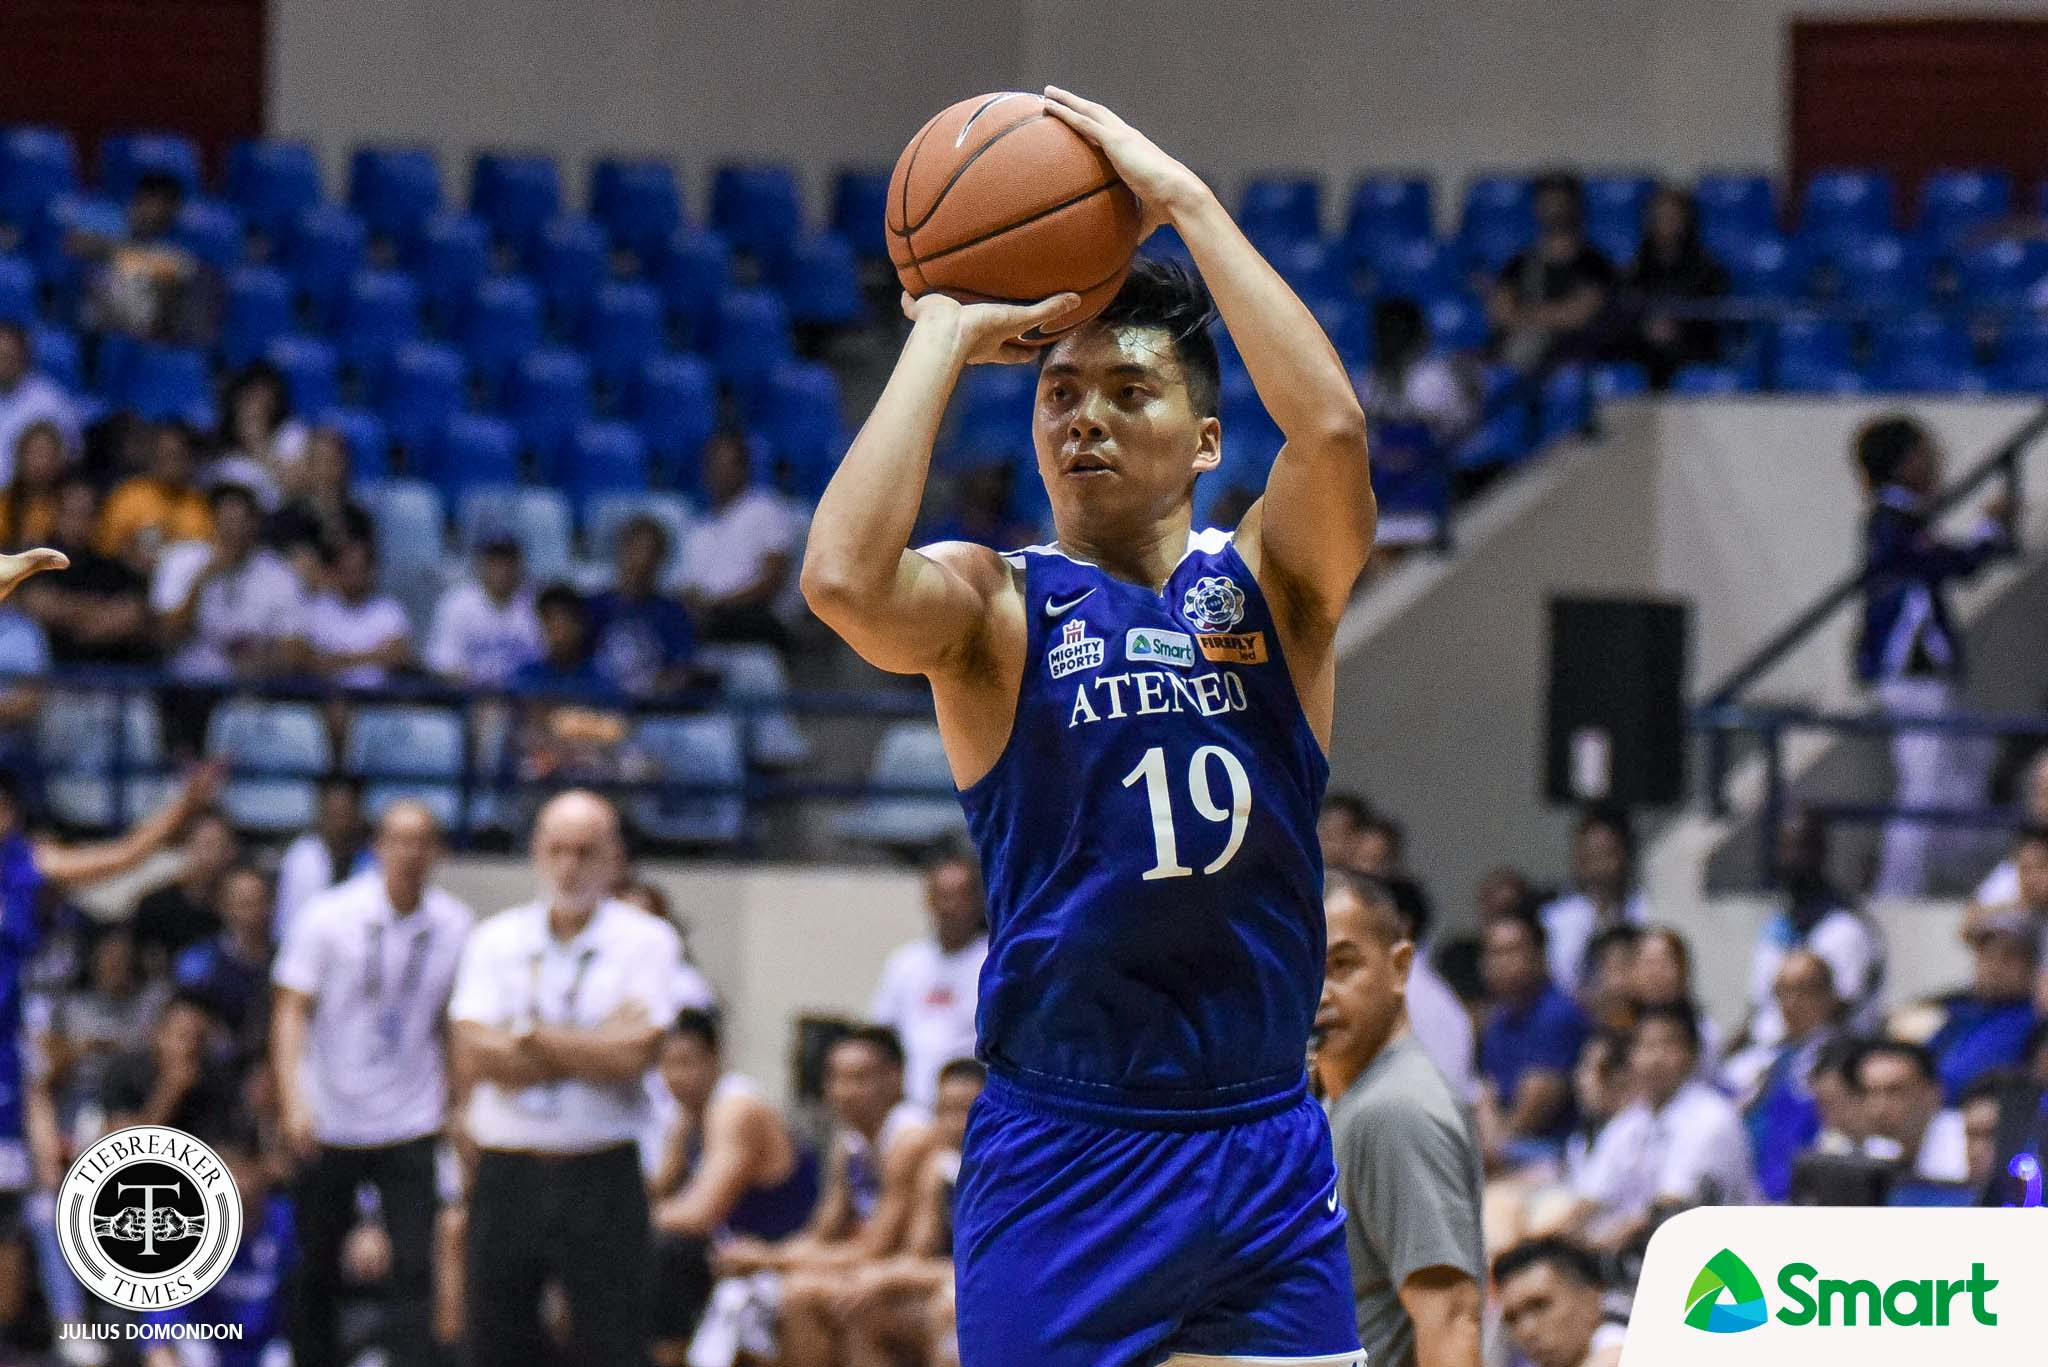 UAAP82-MBB-11TH-PHOTO-ADMU-TYLER-TIO UAAP rules will allow Ateneo to have new FSA once Kouame is naturalized ADMU Basketball News UAAP  - philippine sports news